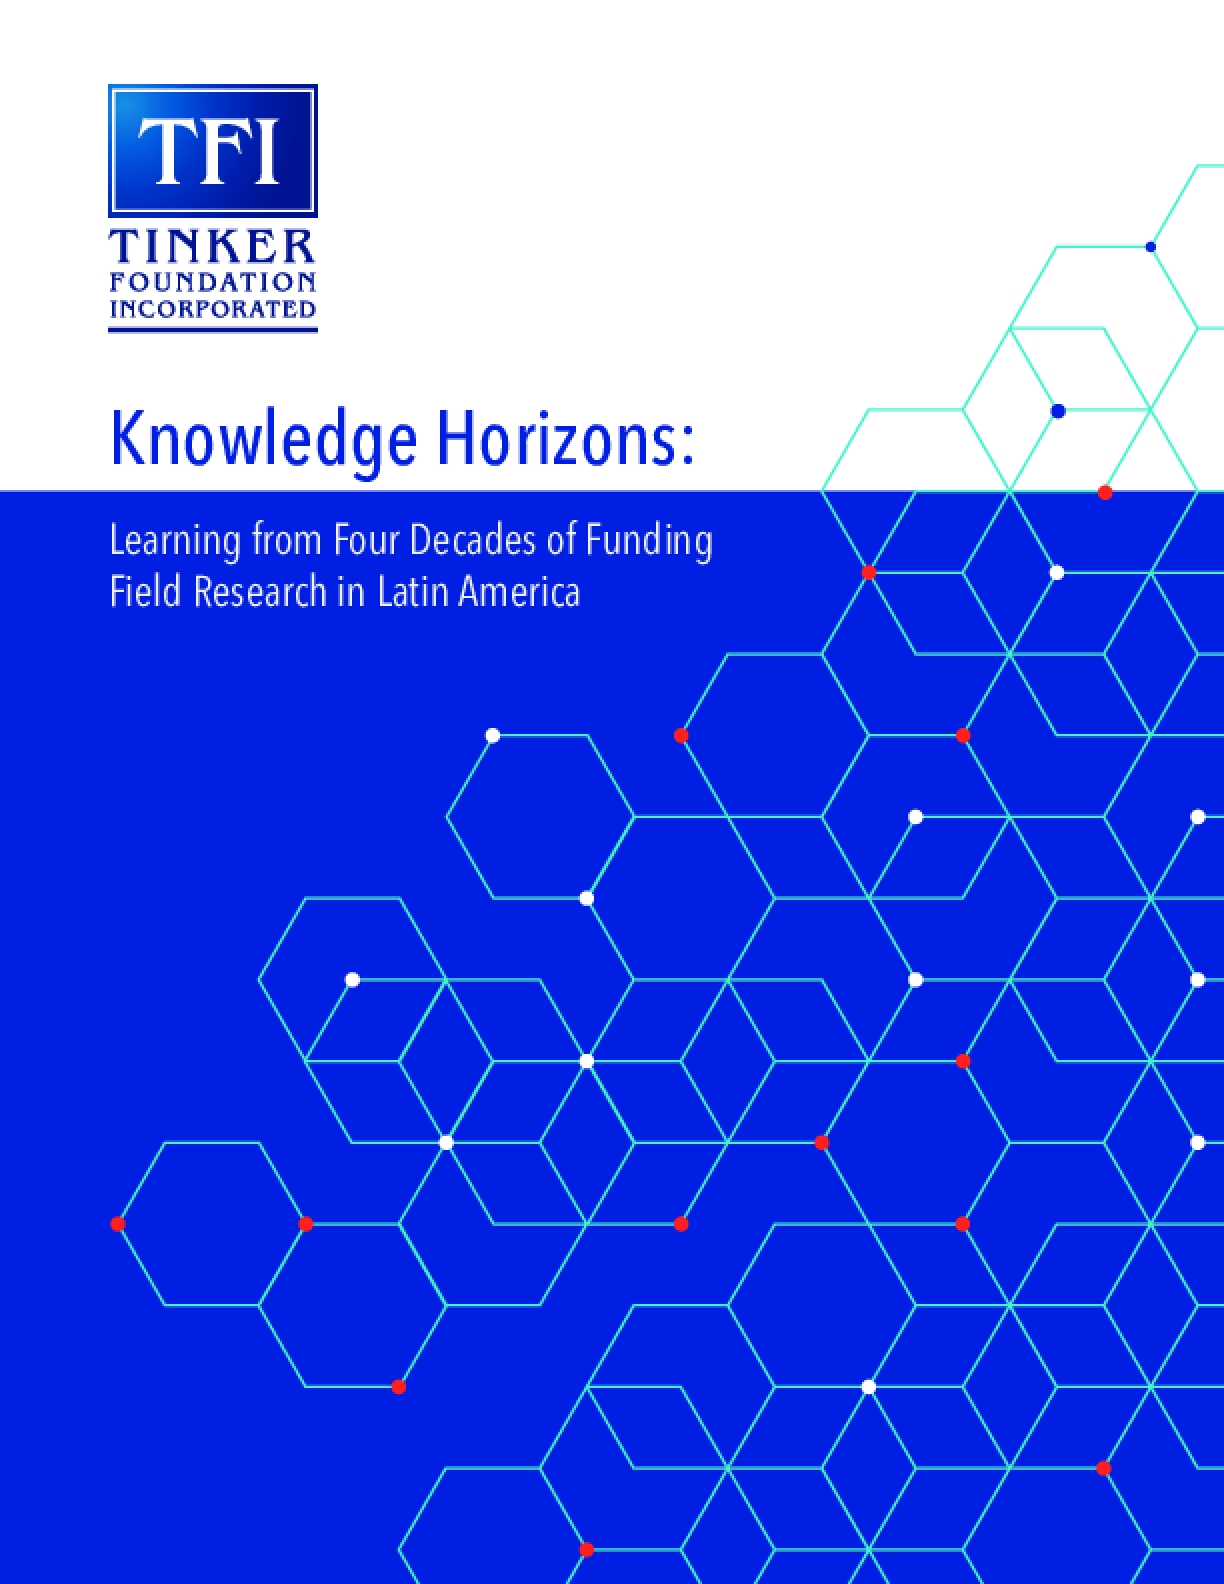 Knowledge Horizons: Learning from Four Decades of Funding Field Research in Latin America